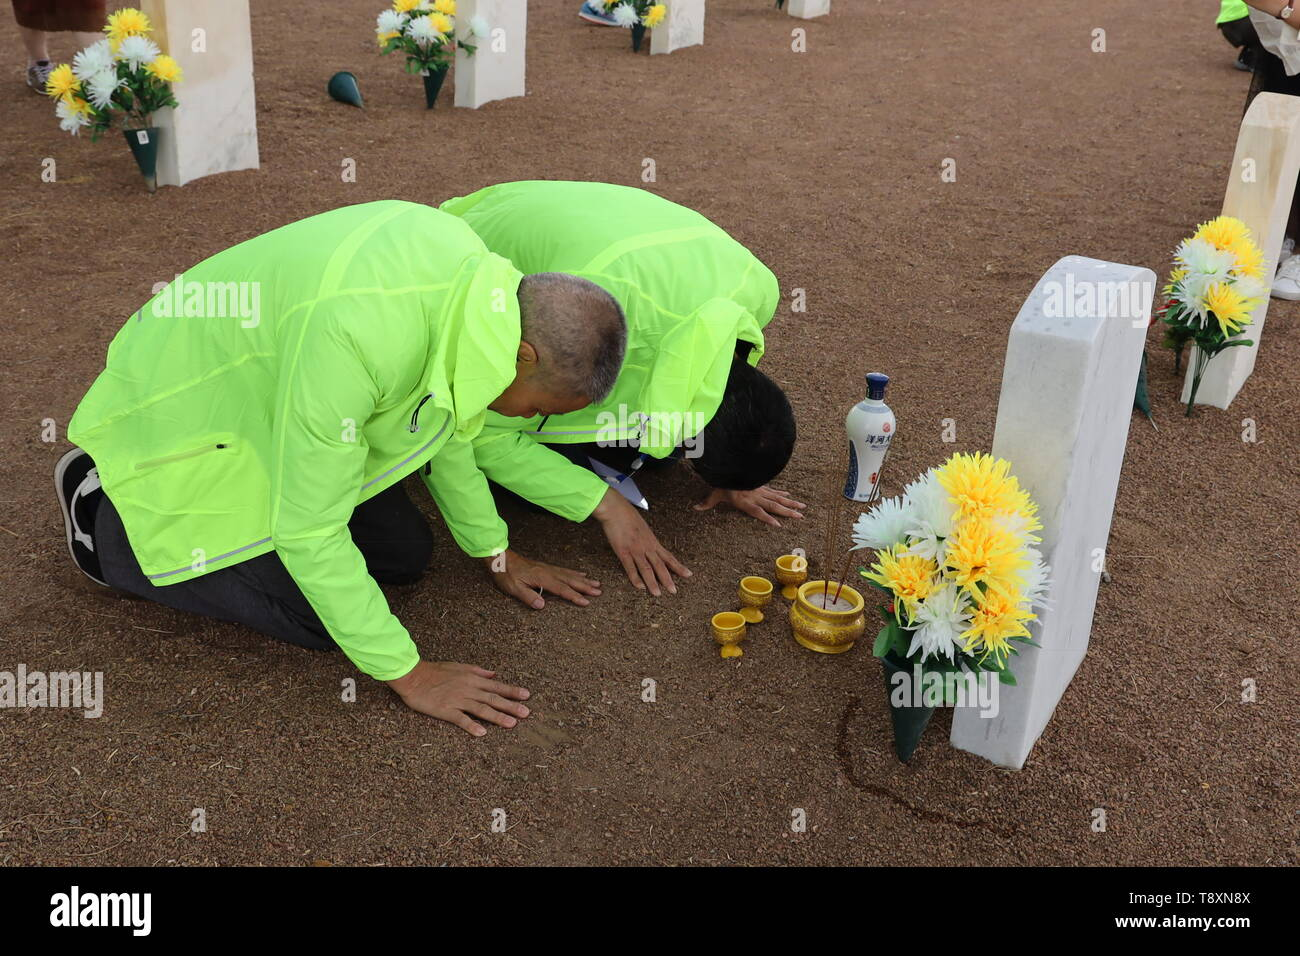 (190515) -- EL PASO (U.S.), May 15, 2019 (Xinhua) -- Family members of a killed Chinese pilot pay homage to their loved one at the Fort Bliss National Cemetery in El Paso, Texas, the United States, on May 12, 2019. More than seven decades ago, groups of young Chinese came to the United States for military flight trainings against Japanese invasion. Unfortunately, 52 of them were killed during pilot trainings. Now, for the first time in more than half a century, relatives of those killed Chinese cadets made an arduous journey to El Paso, U.S. state of Texas, for belated reunions with their dece - Stock Image